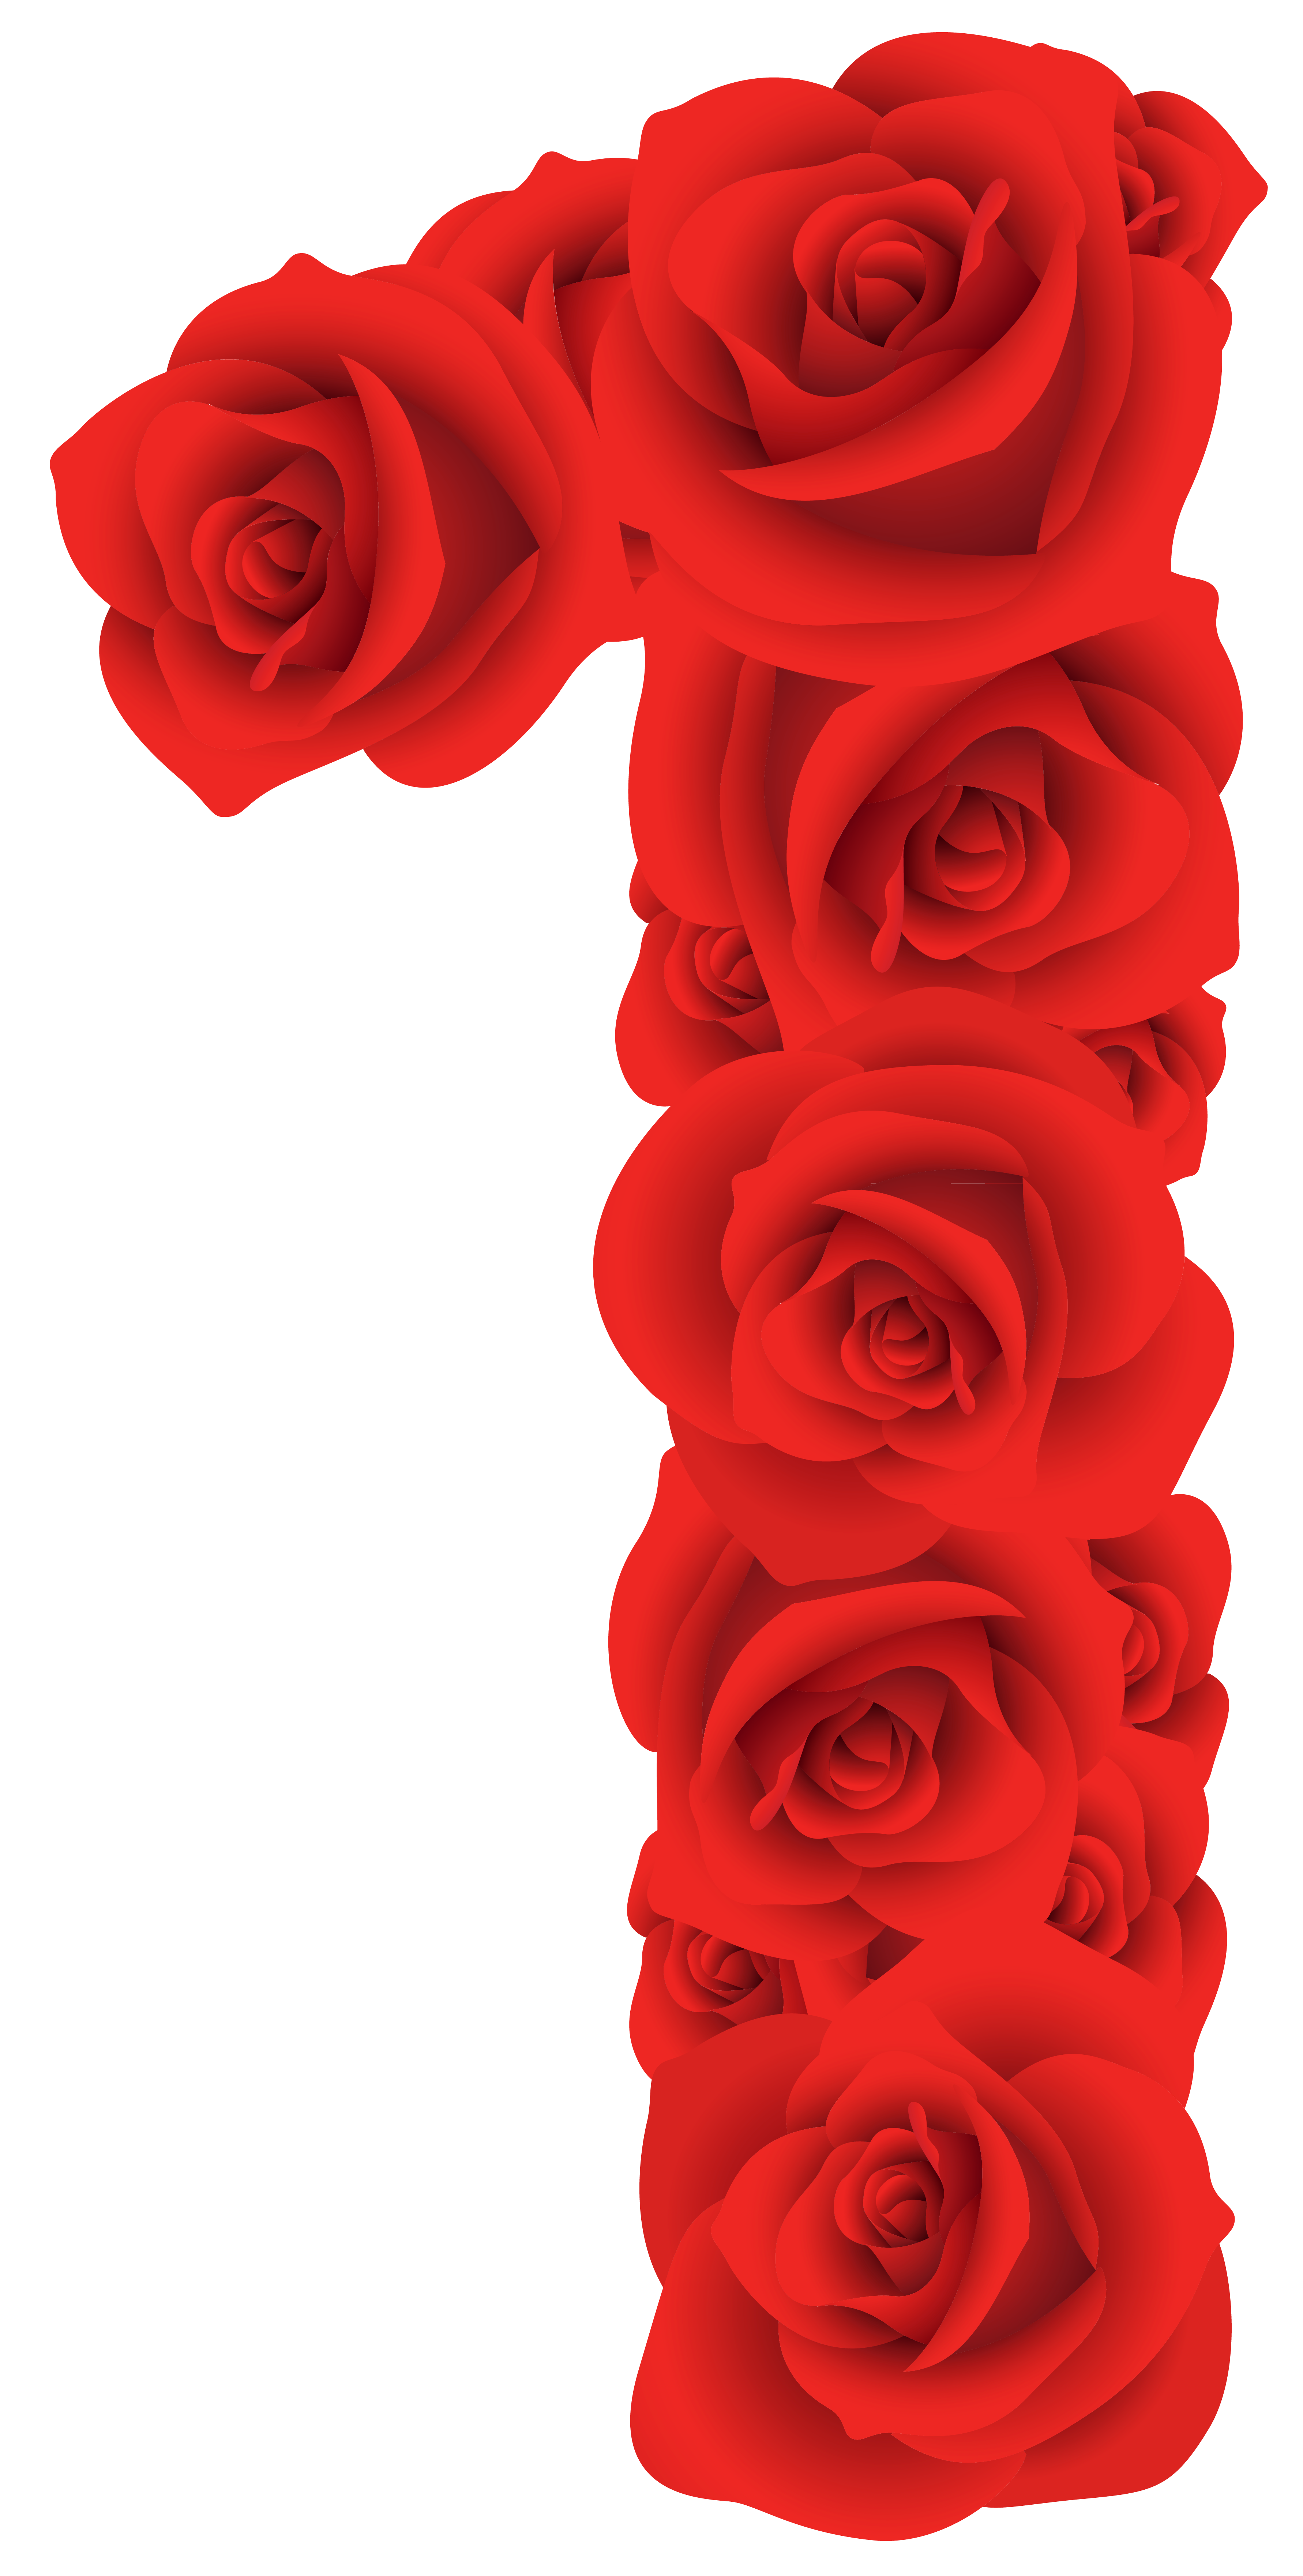 Red Roses Number One PNG Clipart Image Red roses, Clip